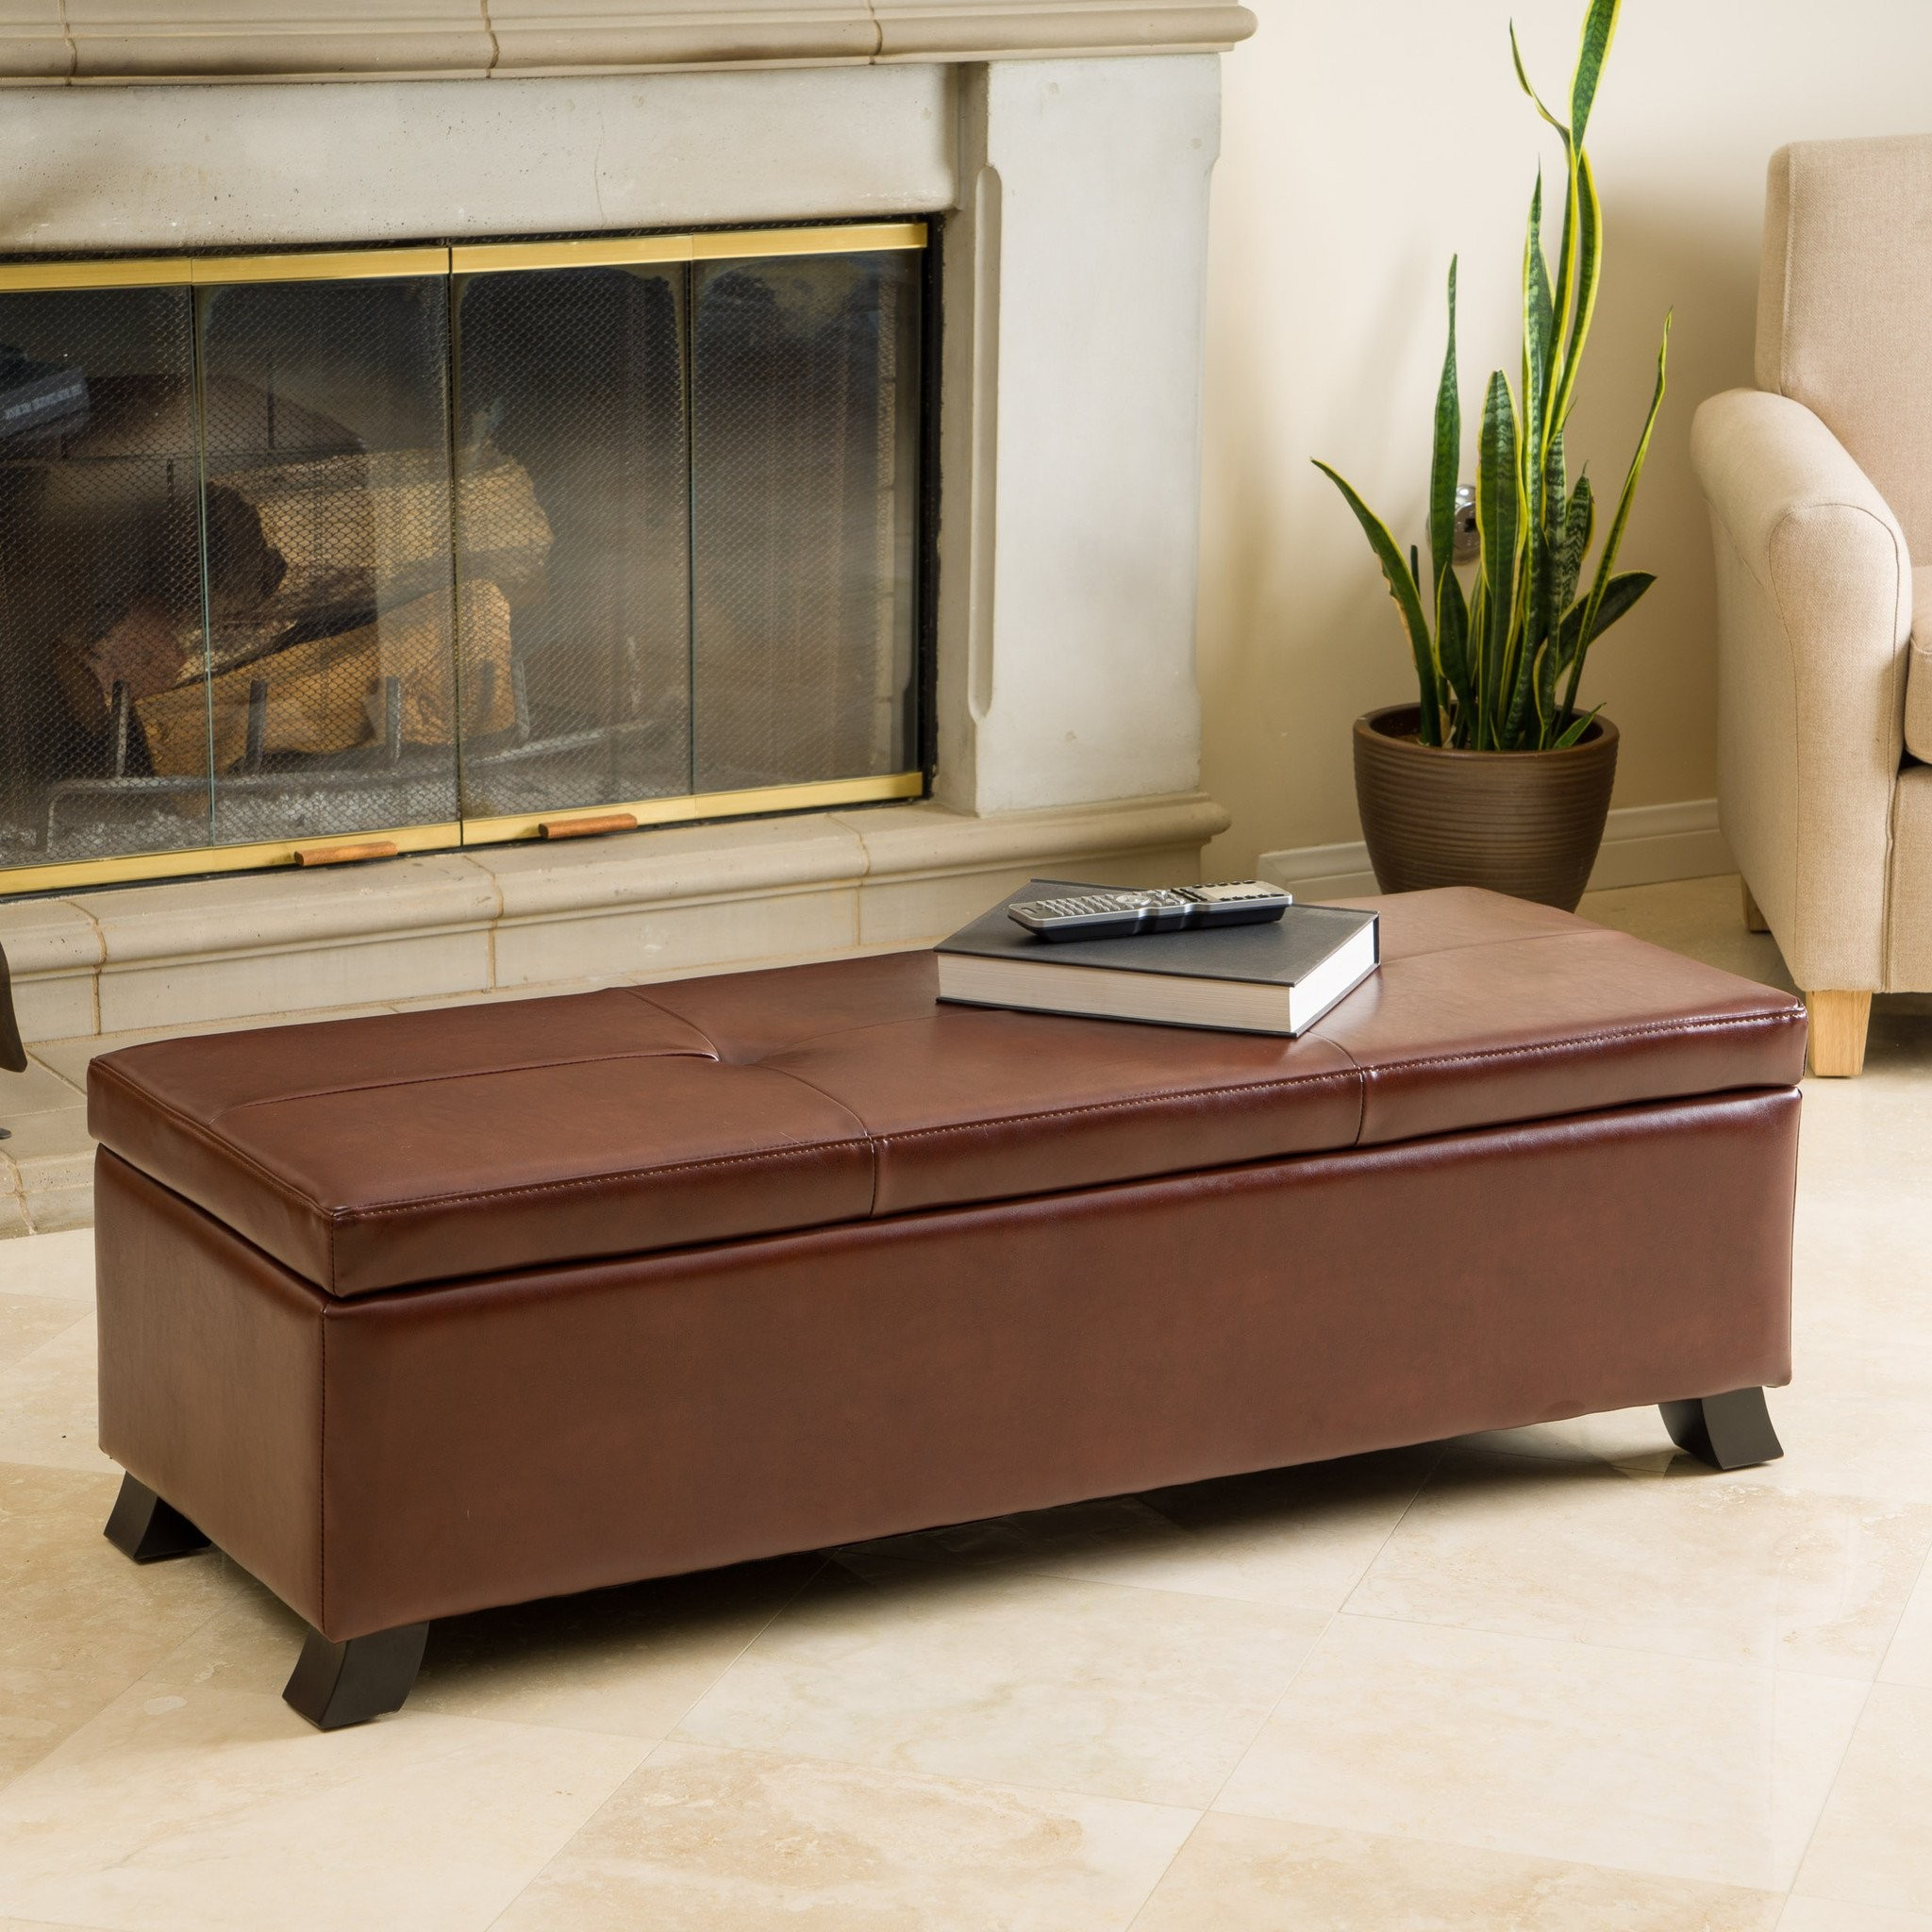 Canal Saddle Brown Storage Ottoman Bench